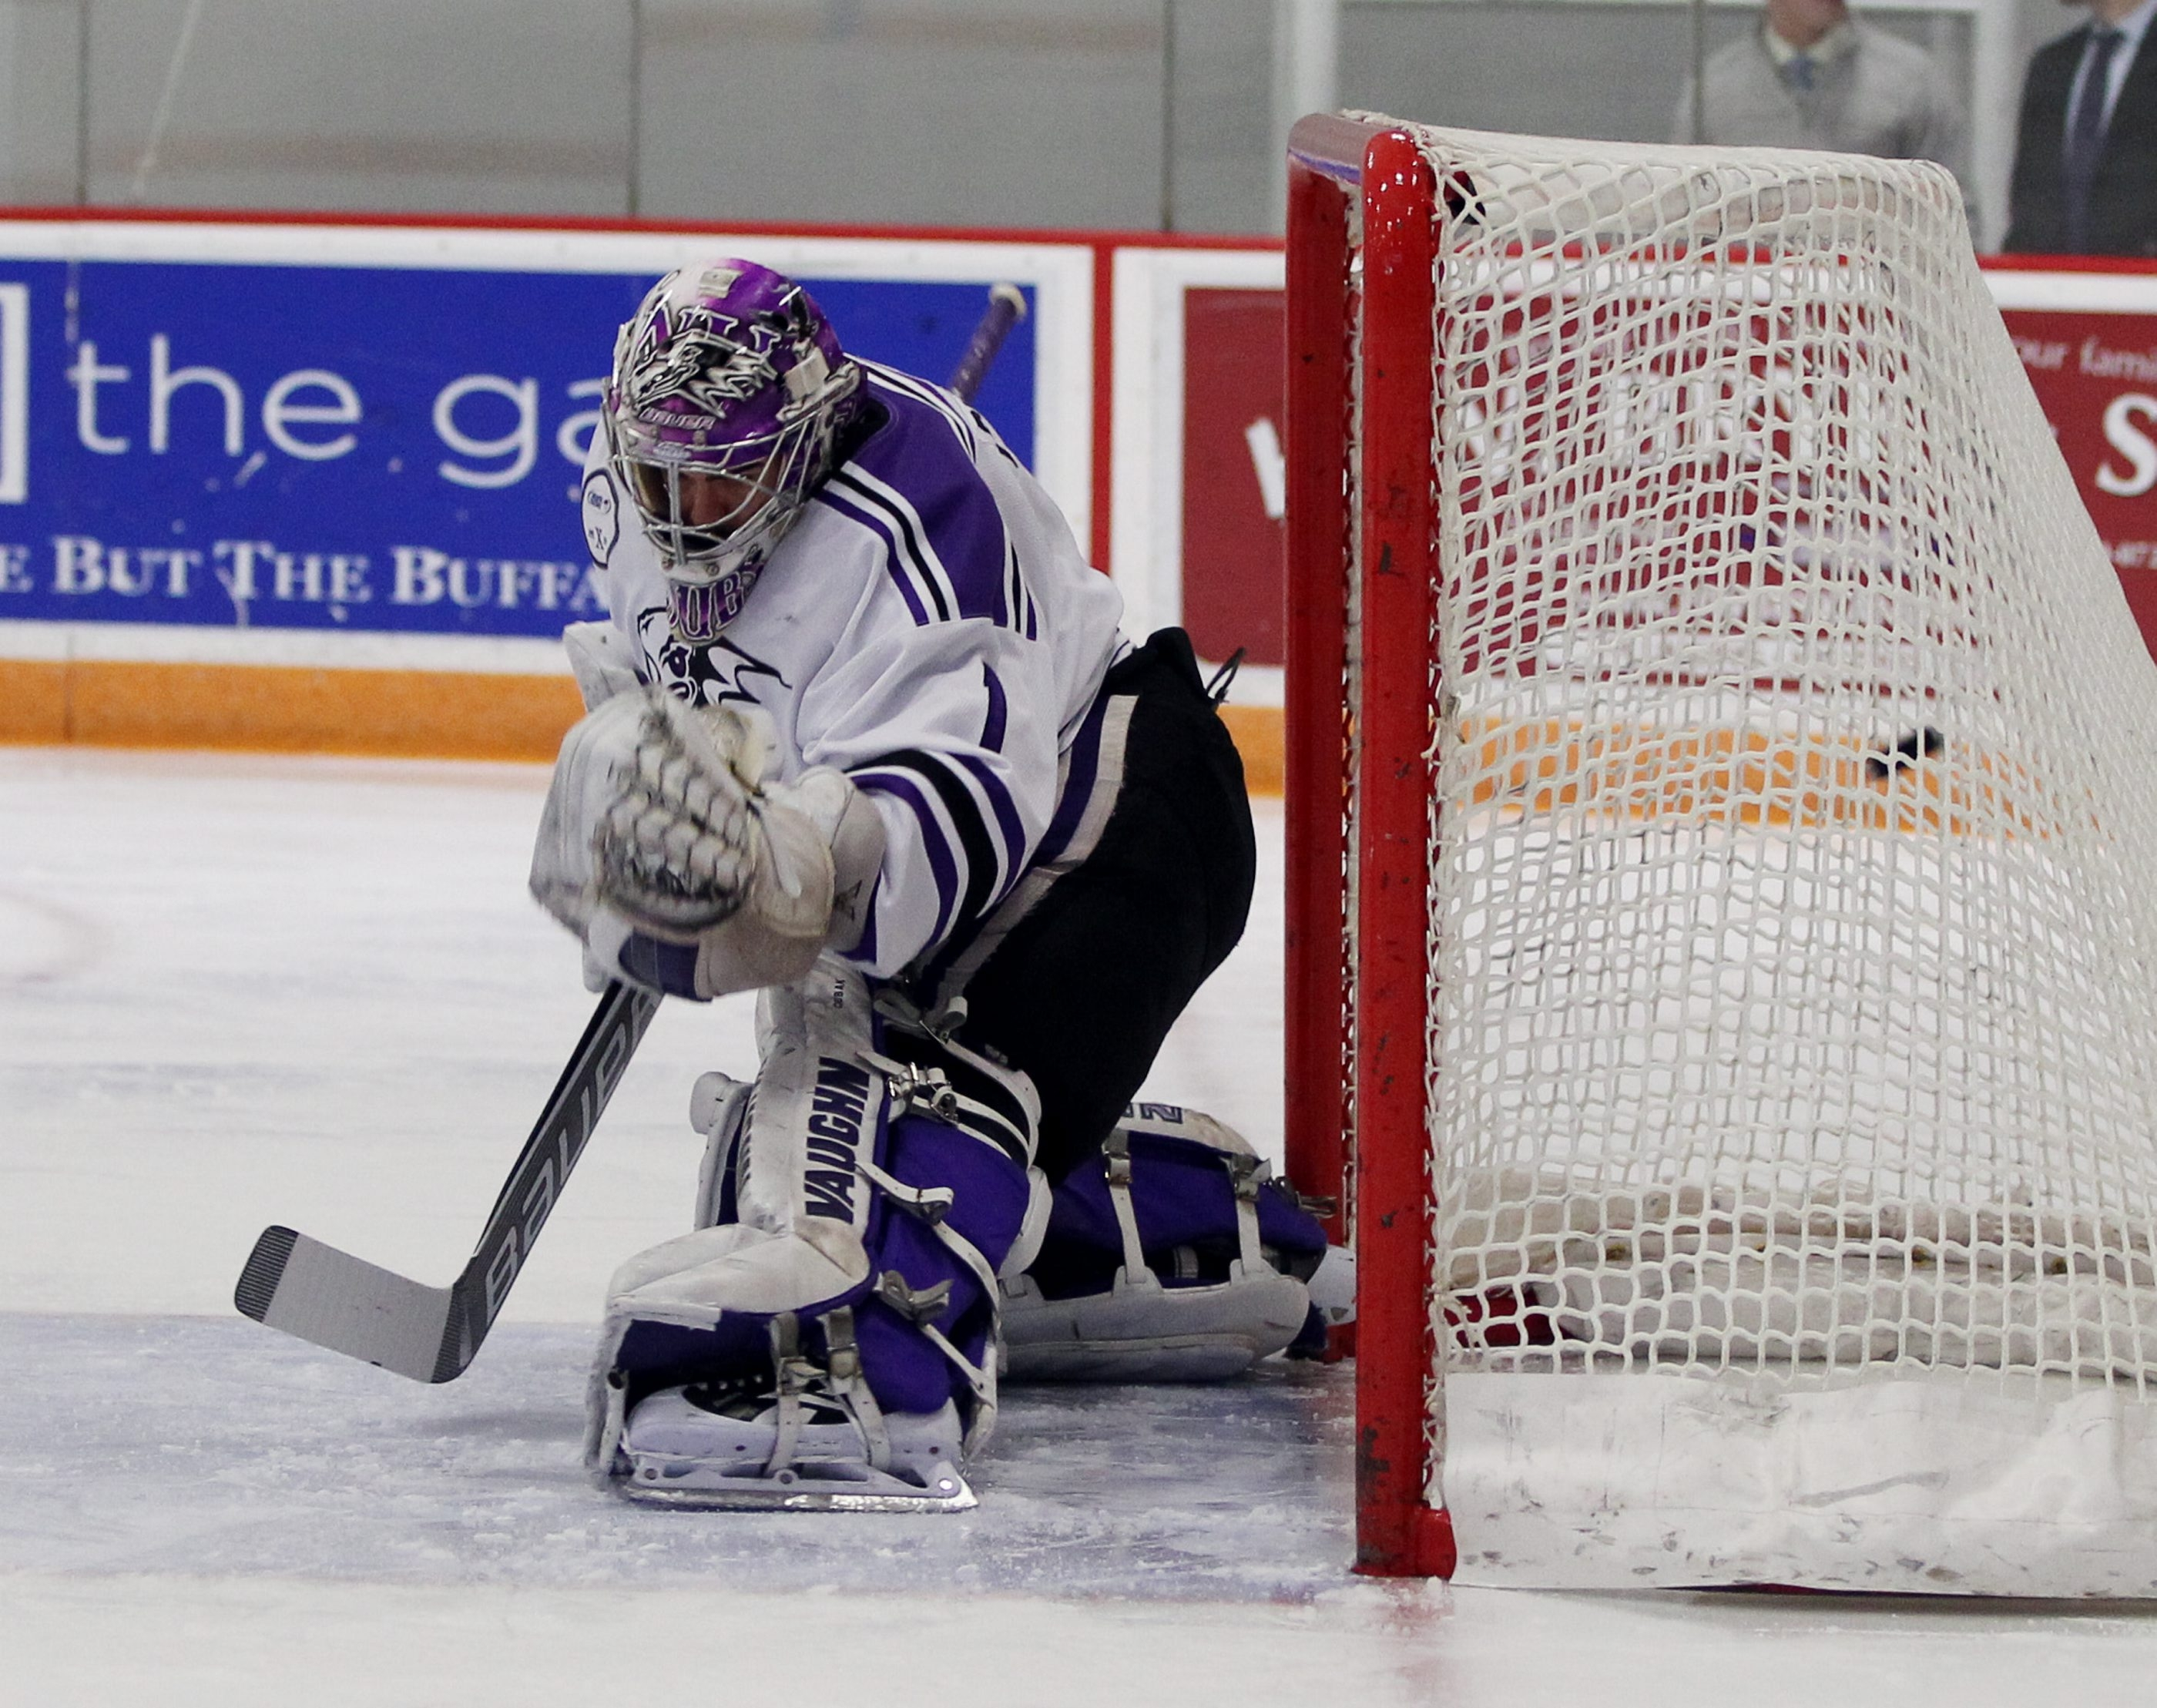 At Niagara University last season, goalie Carsen Chubak was among the nation's elite, but his transition to minor-league hockey has made it difficult to show what he can do.